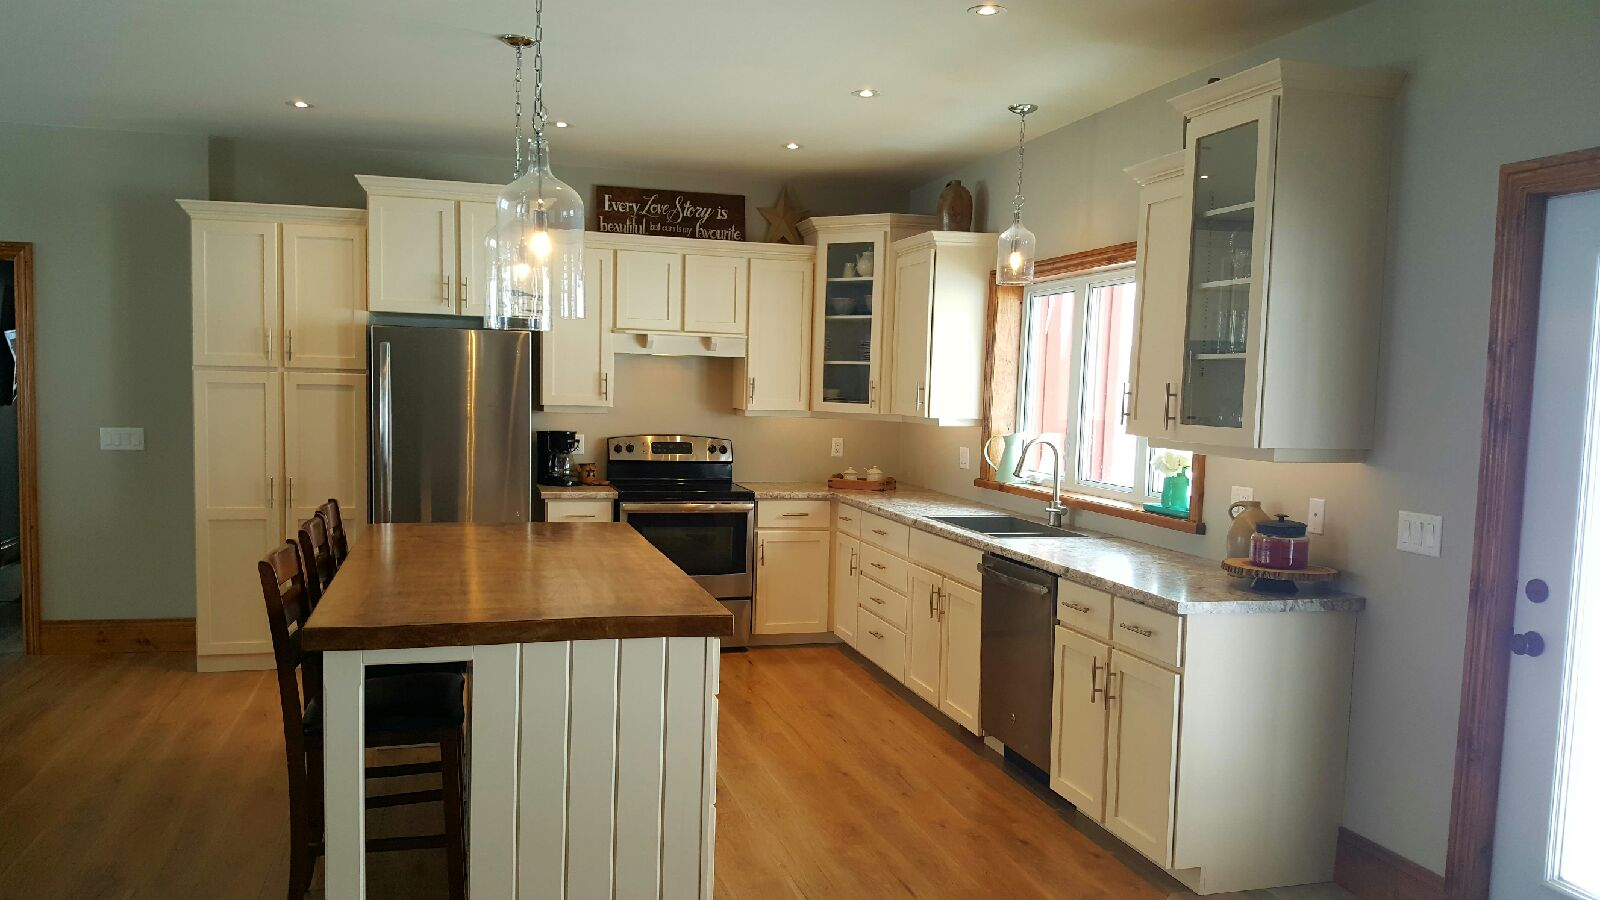 kitchen cabinetry jaw enlarge moose cabinets hanover to oak gallery click image